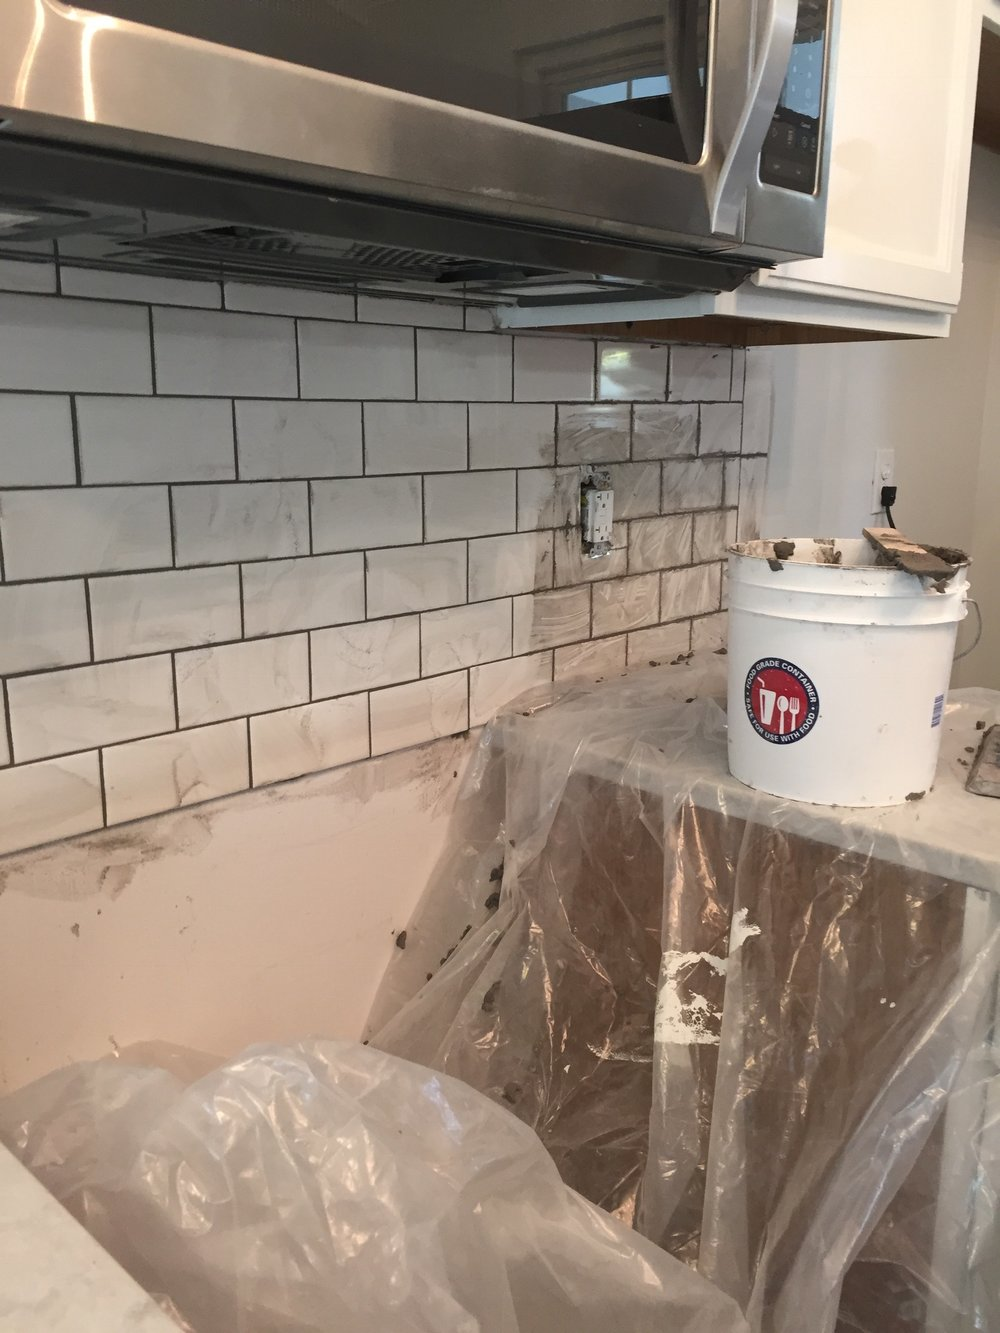 Added subway tile backsplash with charcoal gray grout.